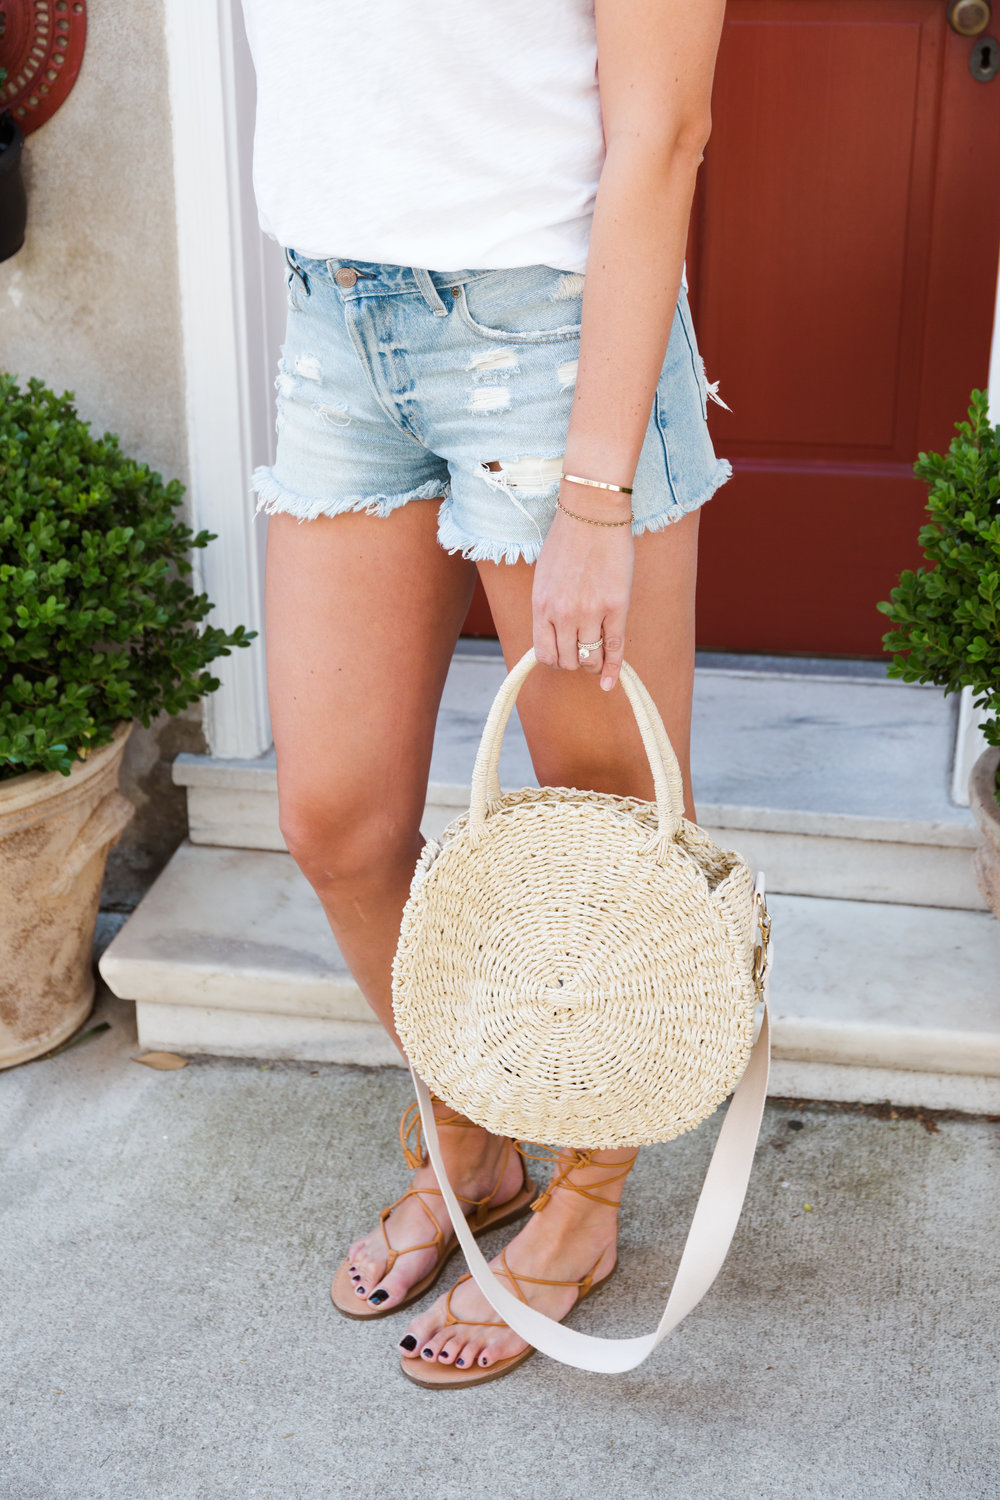 4 Must-Have Accessories for your Summer Wardrobe